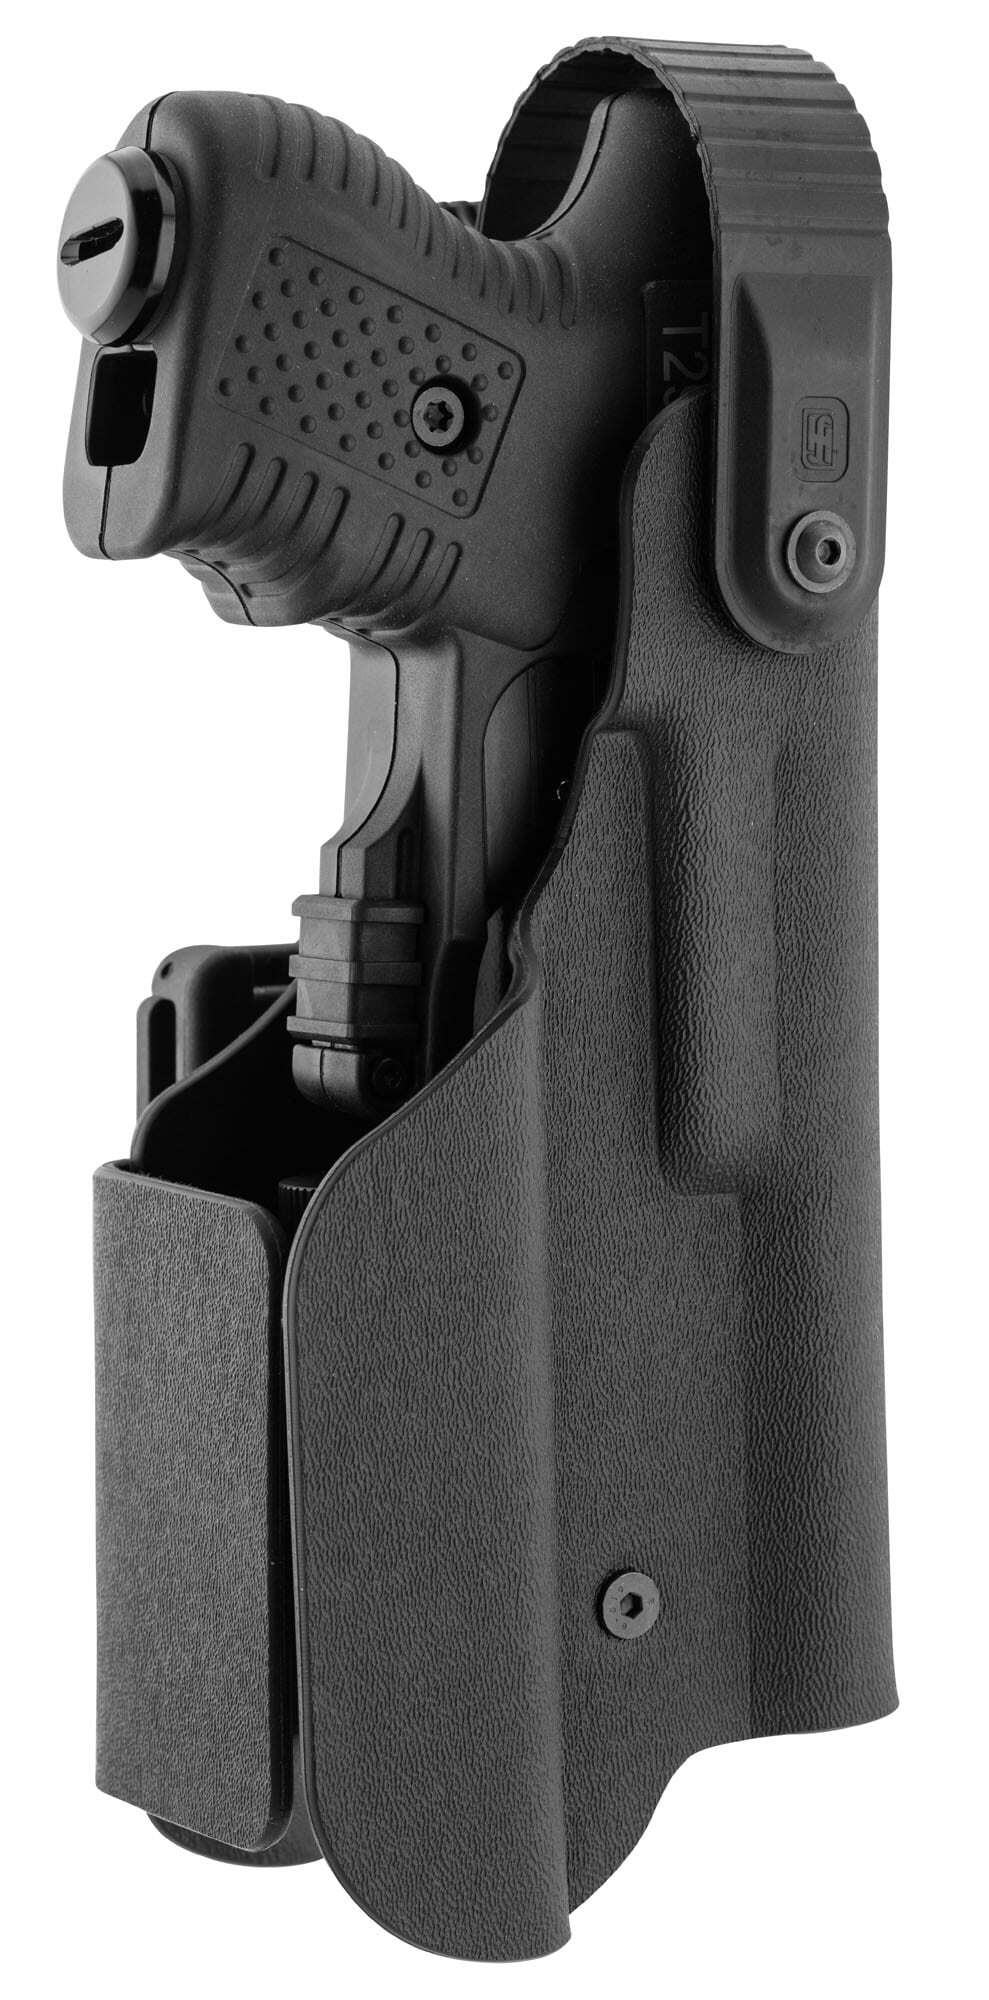 JPX390-3-Holster pour JPX - Kydex Paladin II avec lampe tactique - JPX390